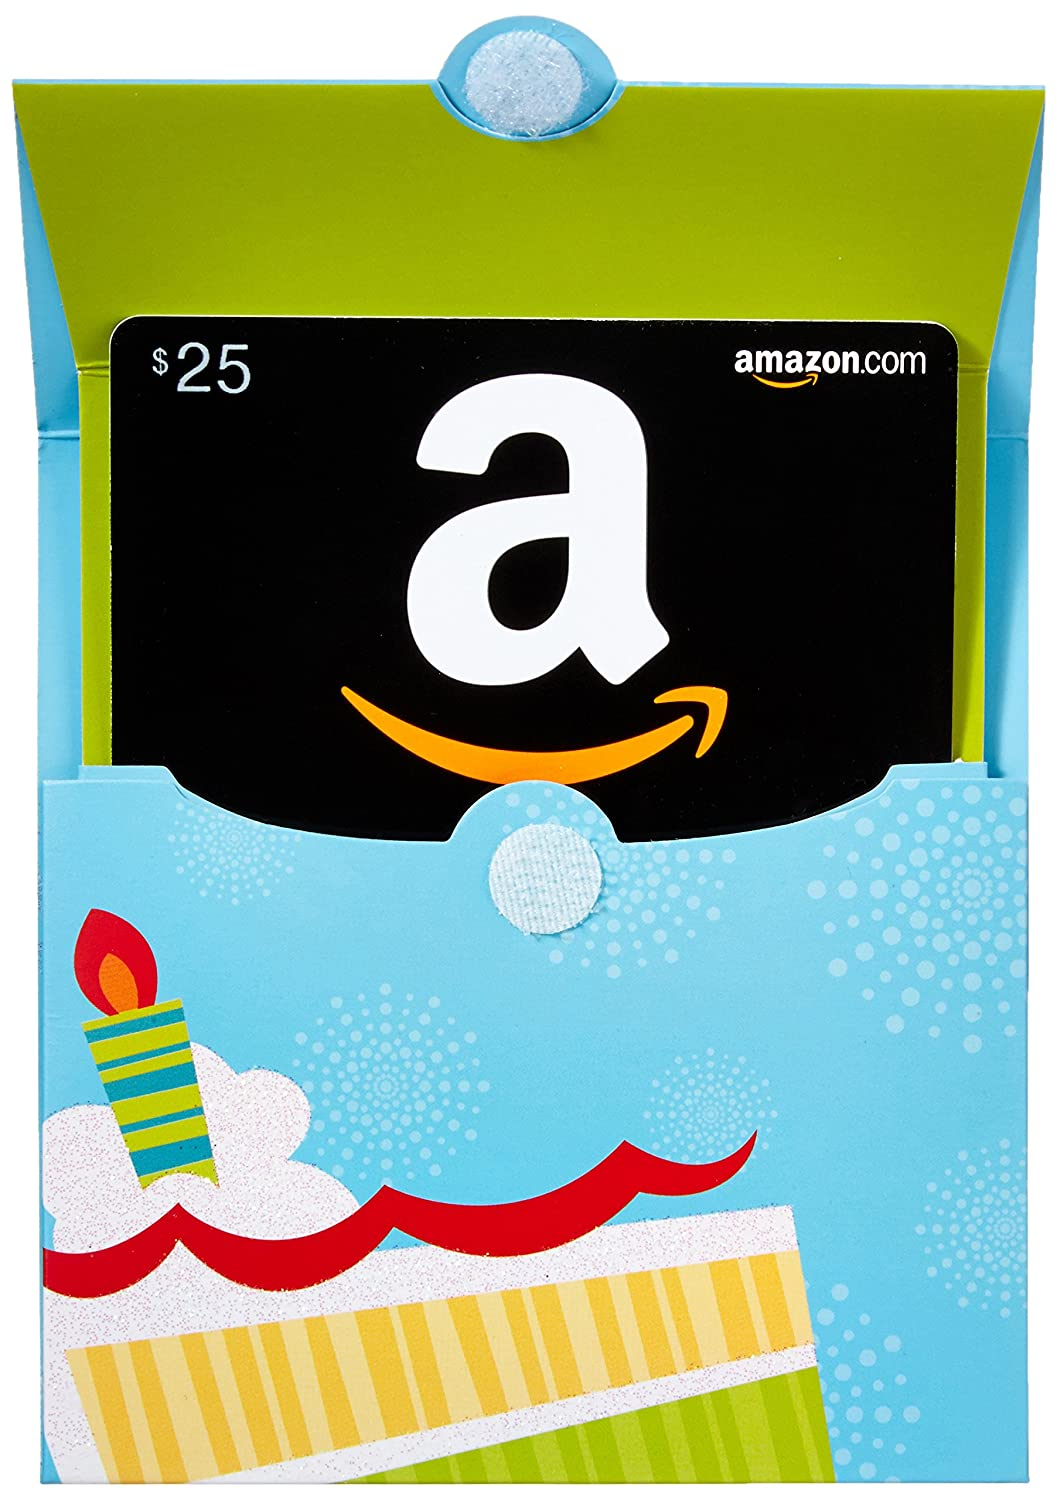 Amazon.com Gift Card - $25 (Birthday Pop-Up)